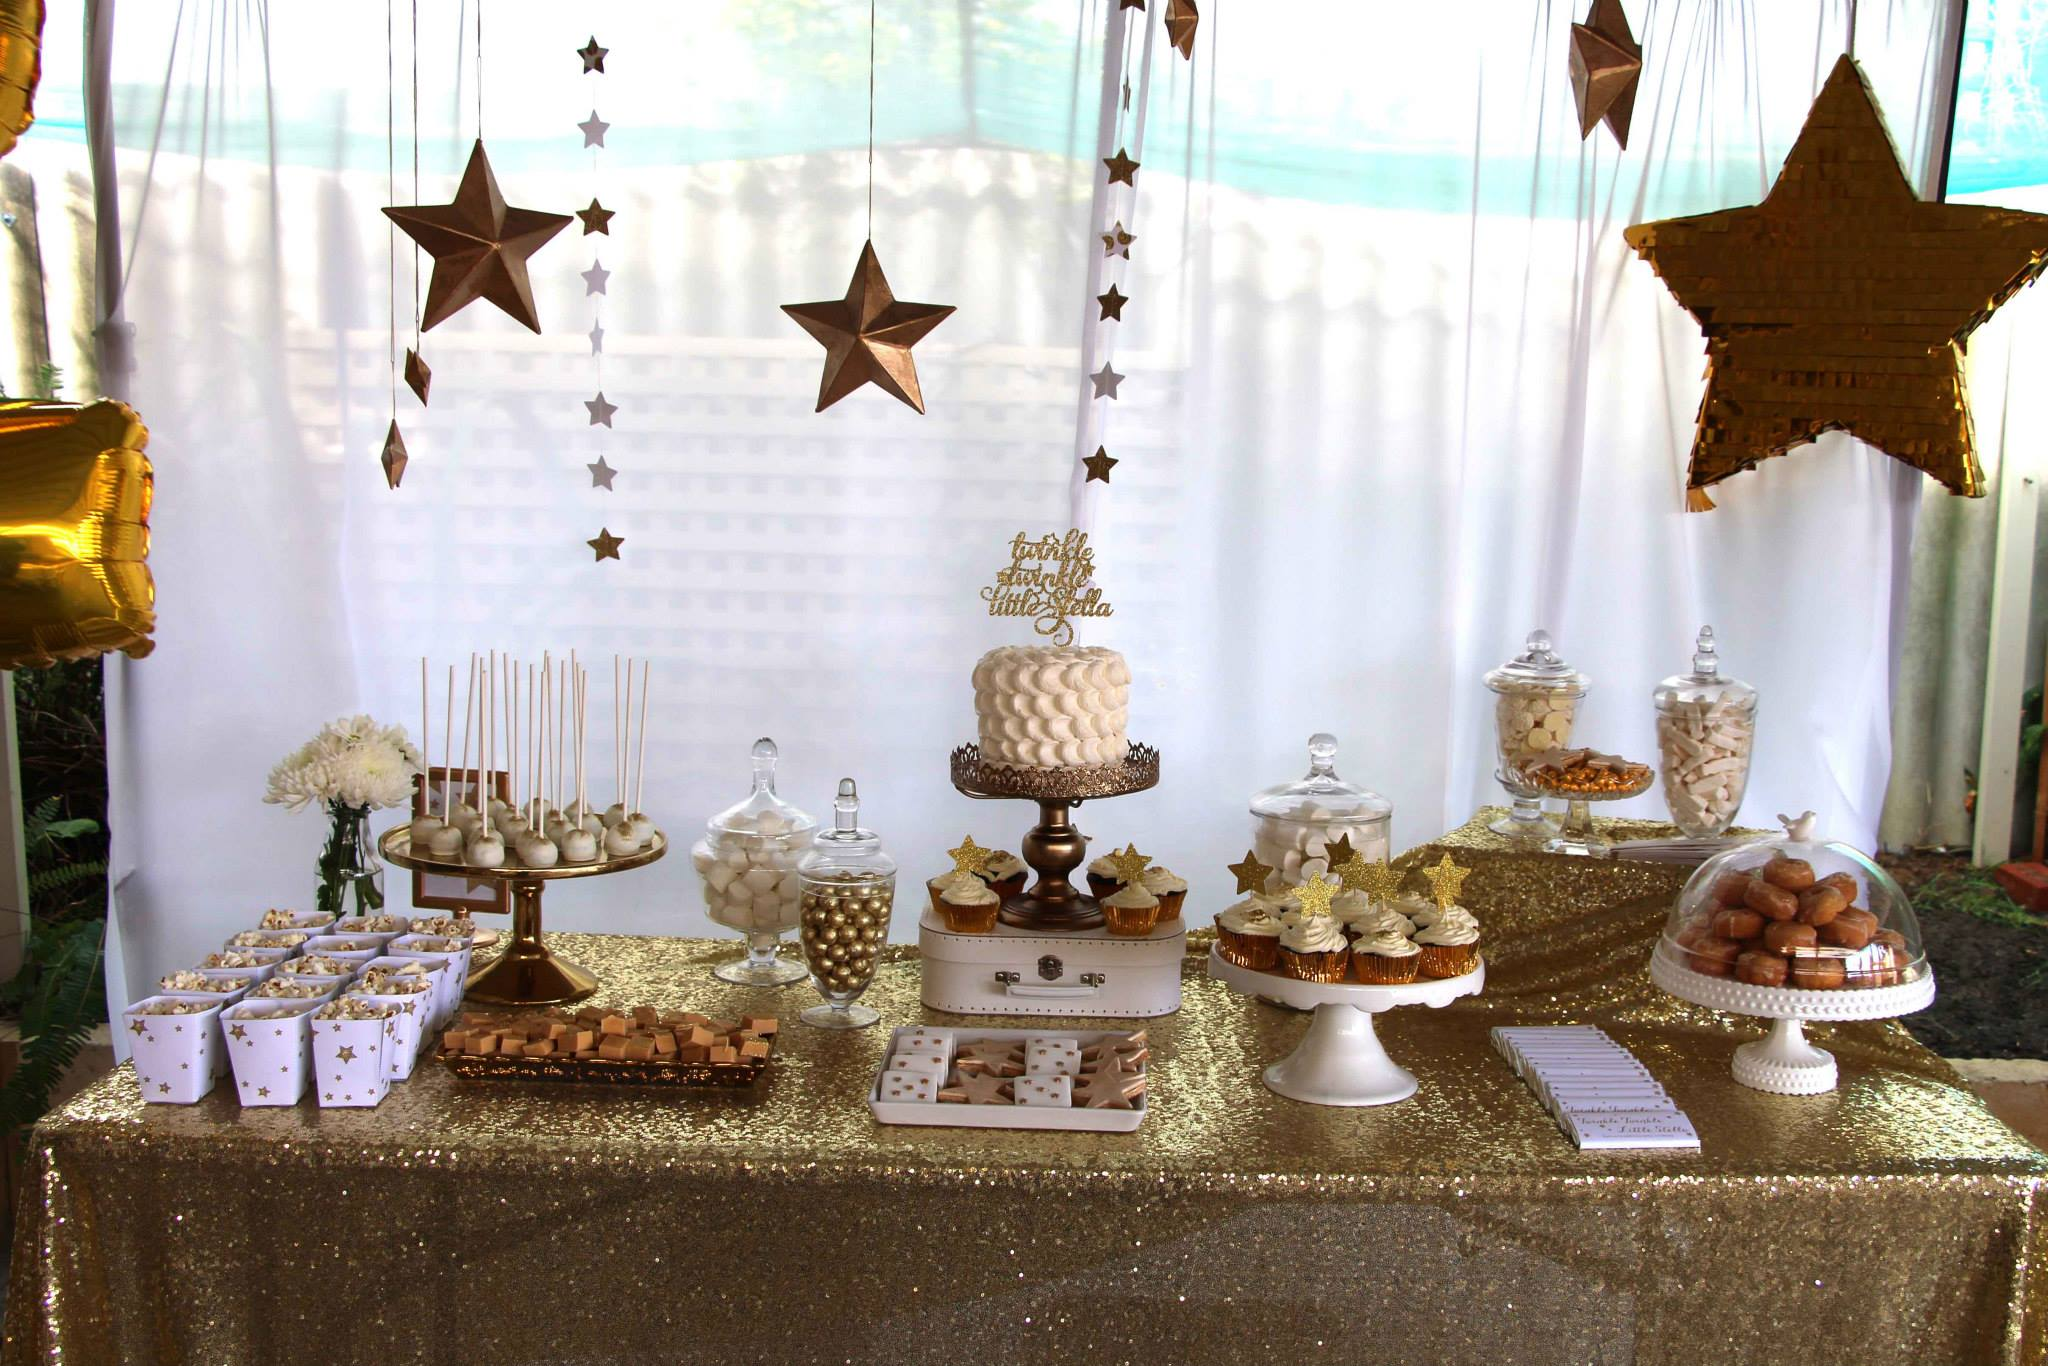 Le Little Star Party Supplies Lifes Celebration